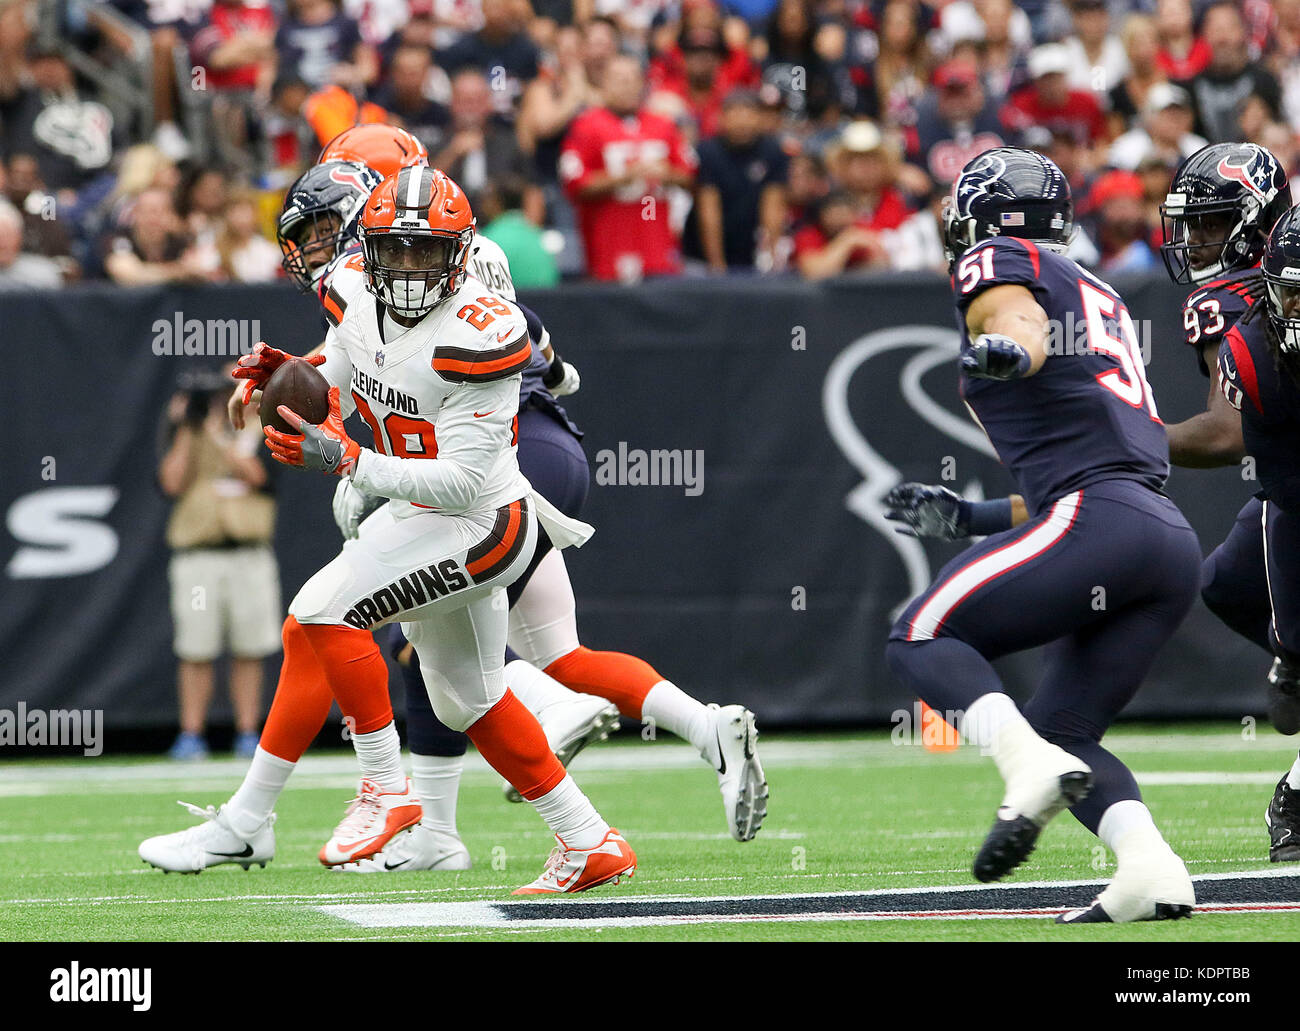 Houston, TX, USA. 15th Oct, 2017. Cleveland Browns running back Duke Johnson (29) runs after a reception in the - Stock Image